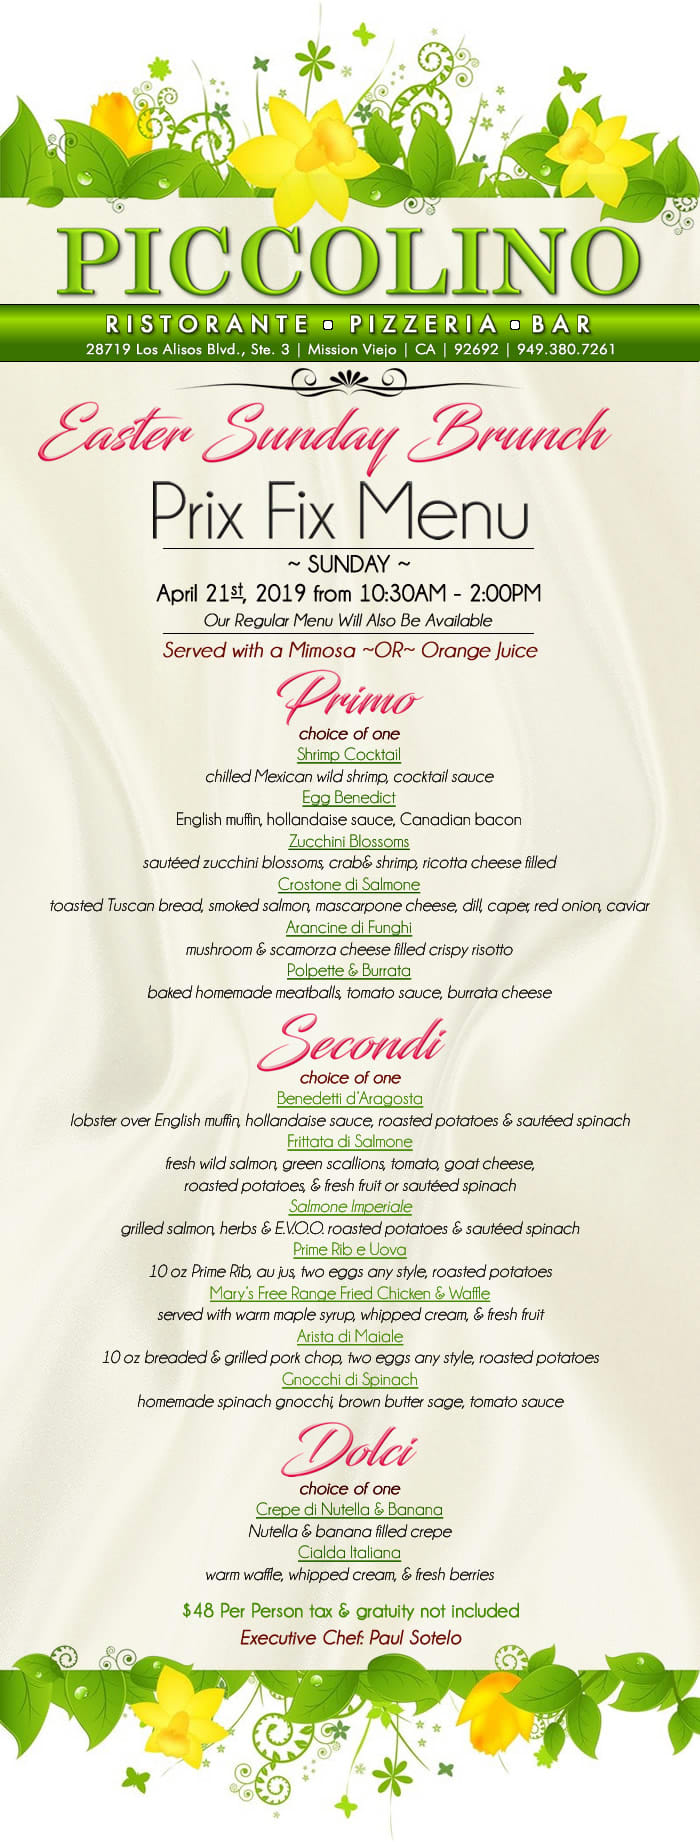 easter sunday brunch menu - for sunday april 21st, 2019